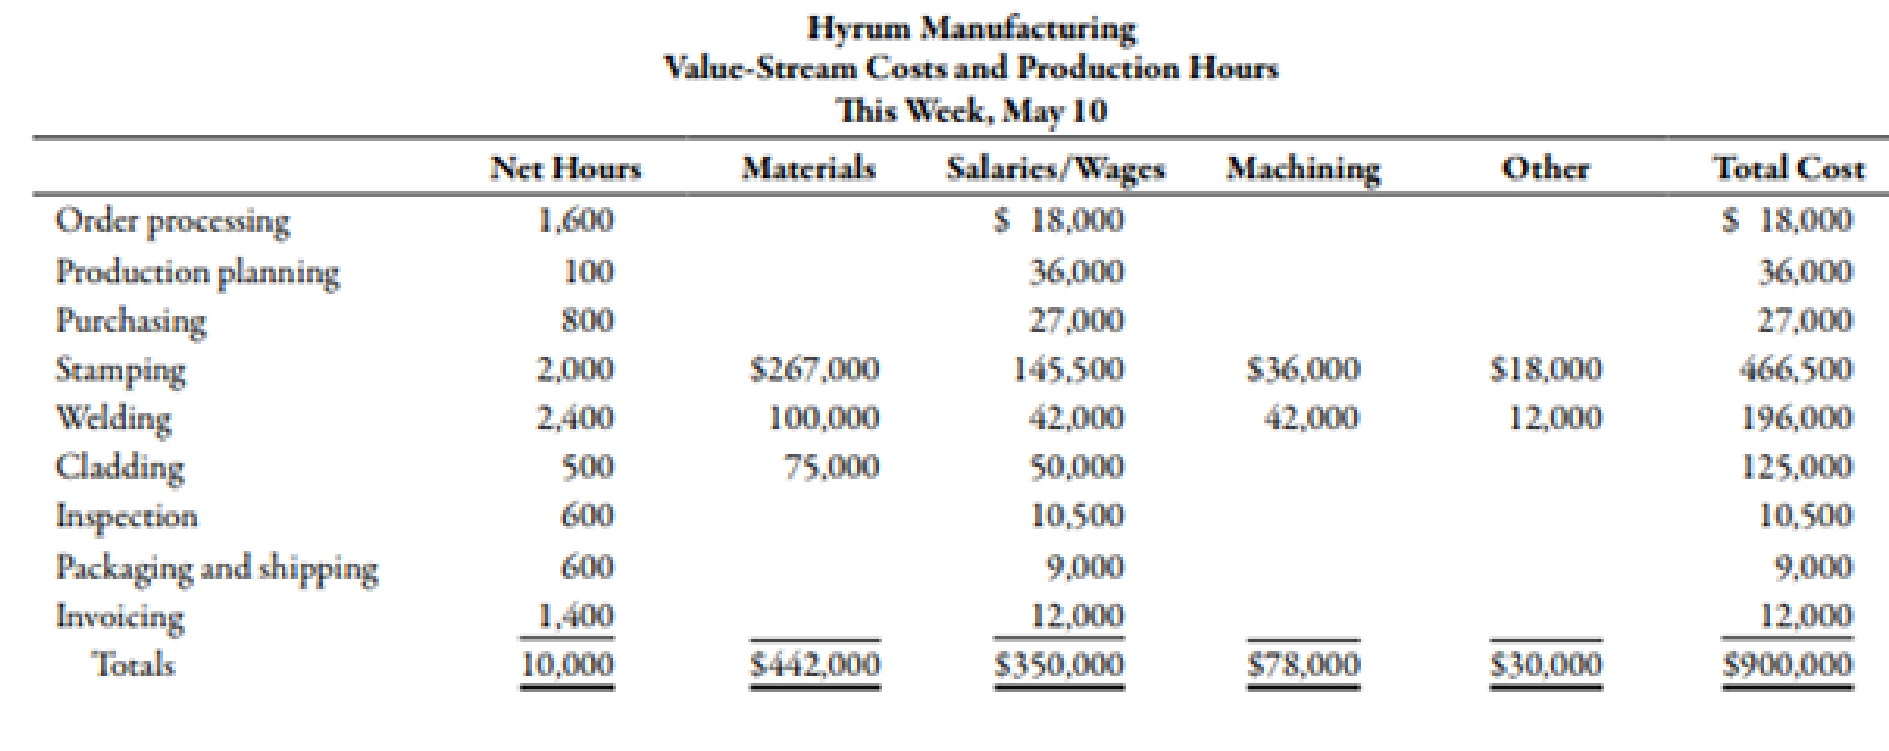 Chapter 13, Problem 25BEA, During the week of May 10, Hyrum Manufacturing produced and shipped 16,000 units of its aluminum